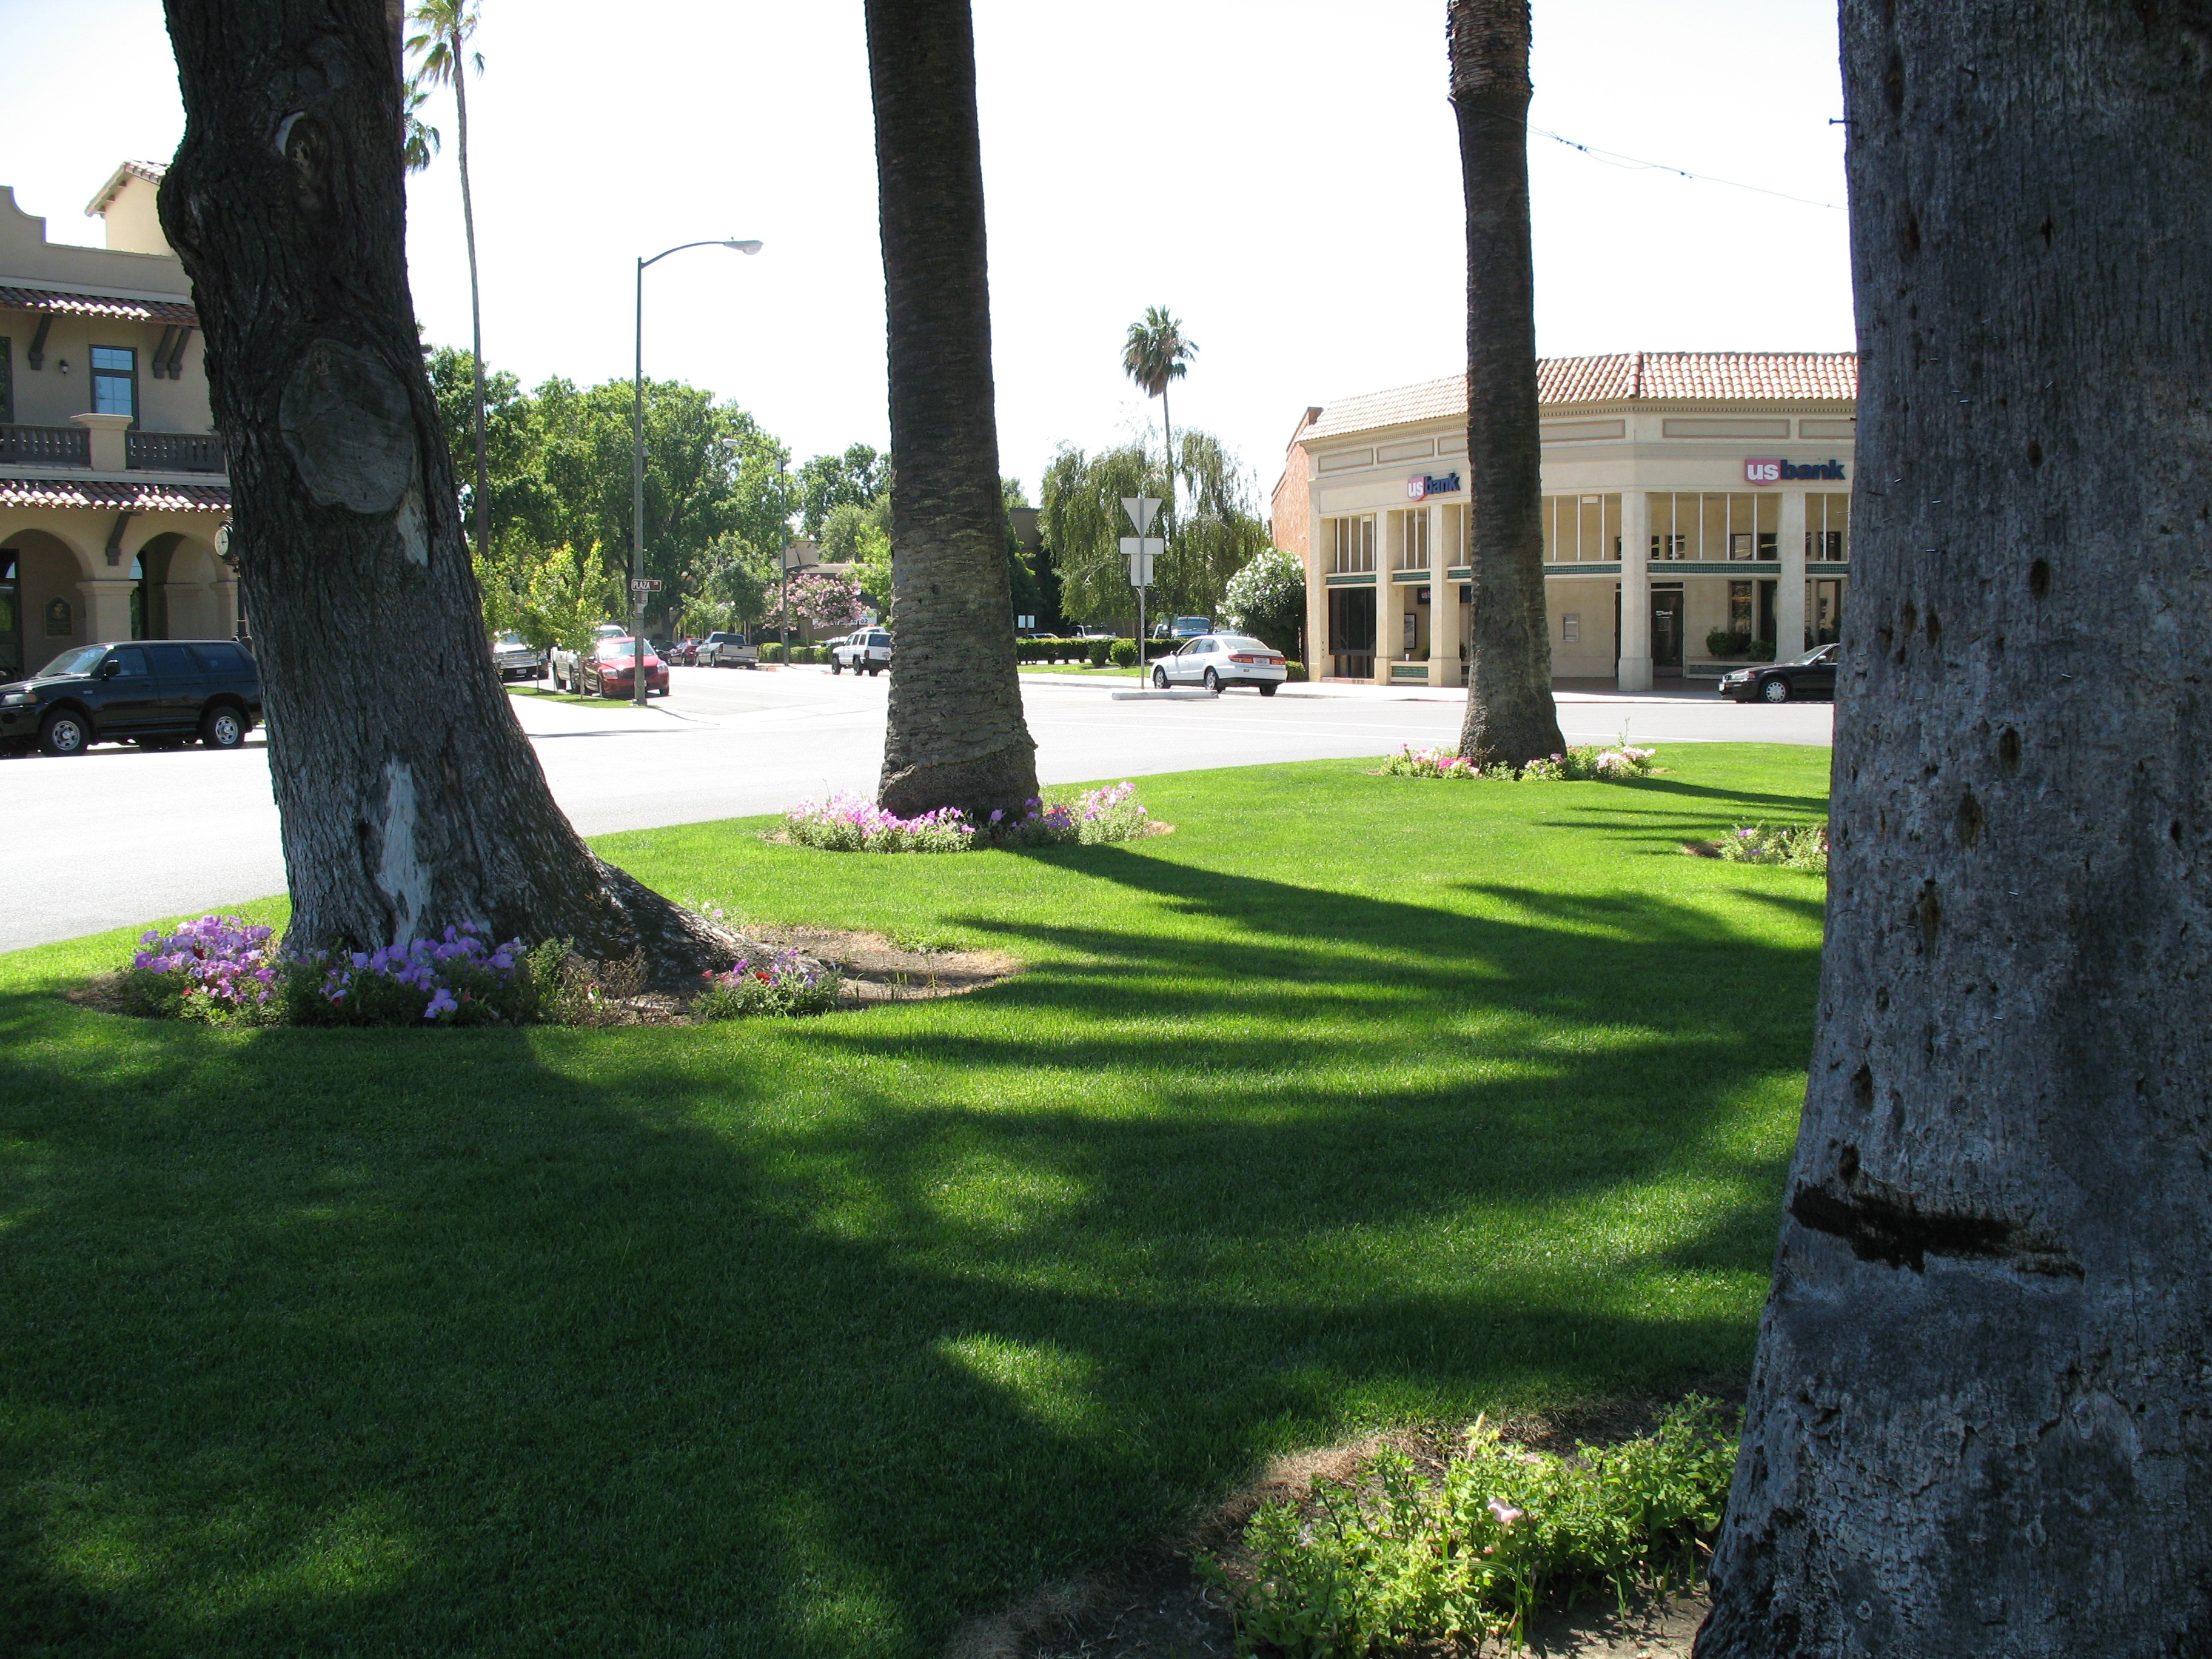 City of Patterson Downtown Circle